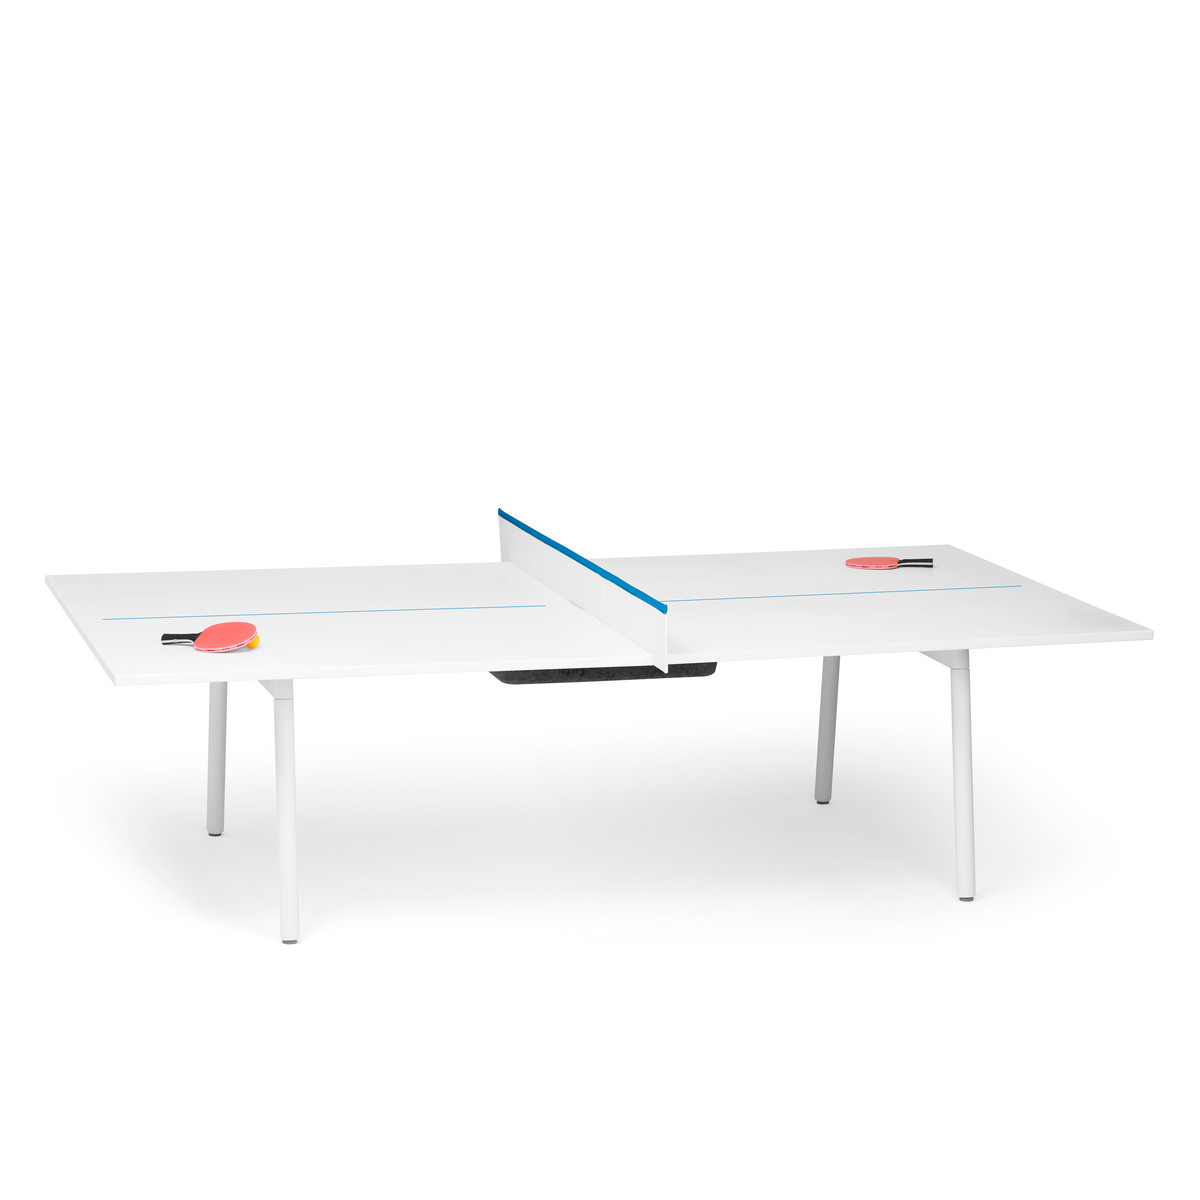 White + Pool Blue Series A Ping Pong Conference Table,Pool Blue,hi